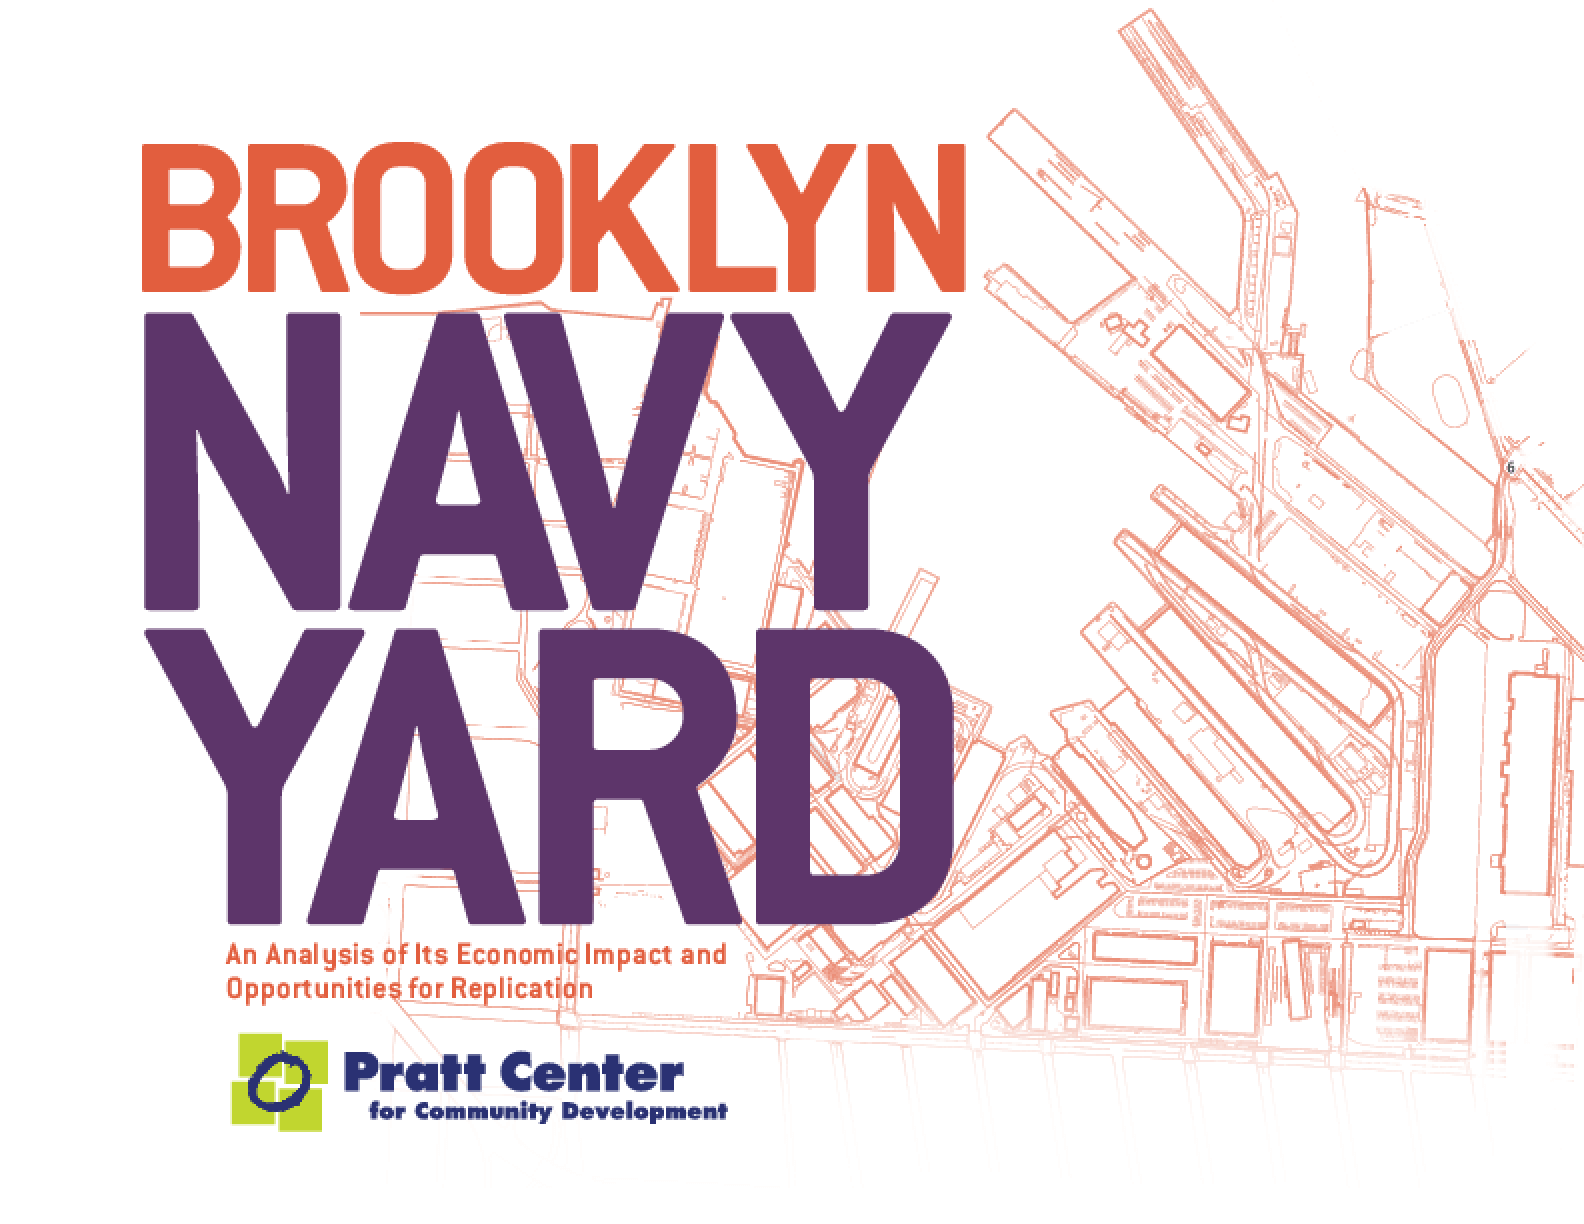 Brooklyn Navy Yard: An Analysis of Its Economic Impact and Opportunities for Replication